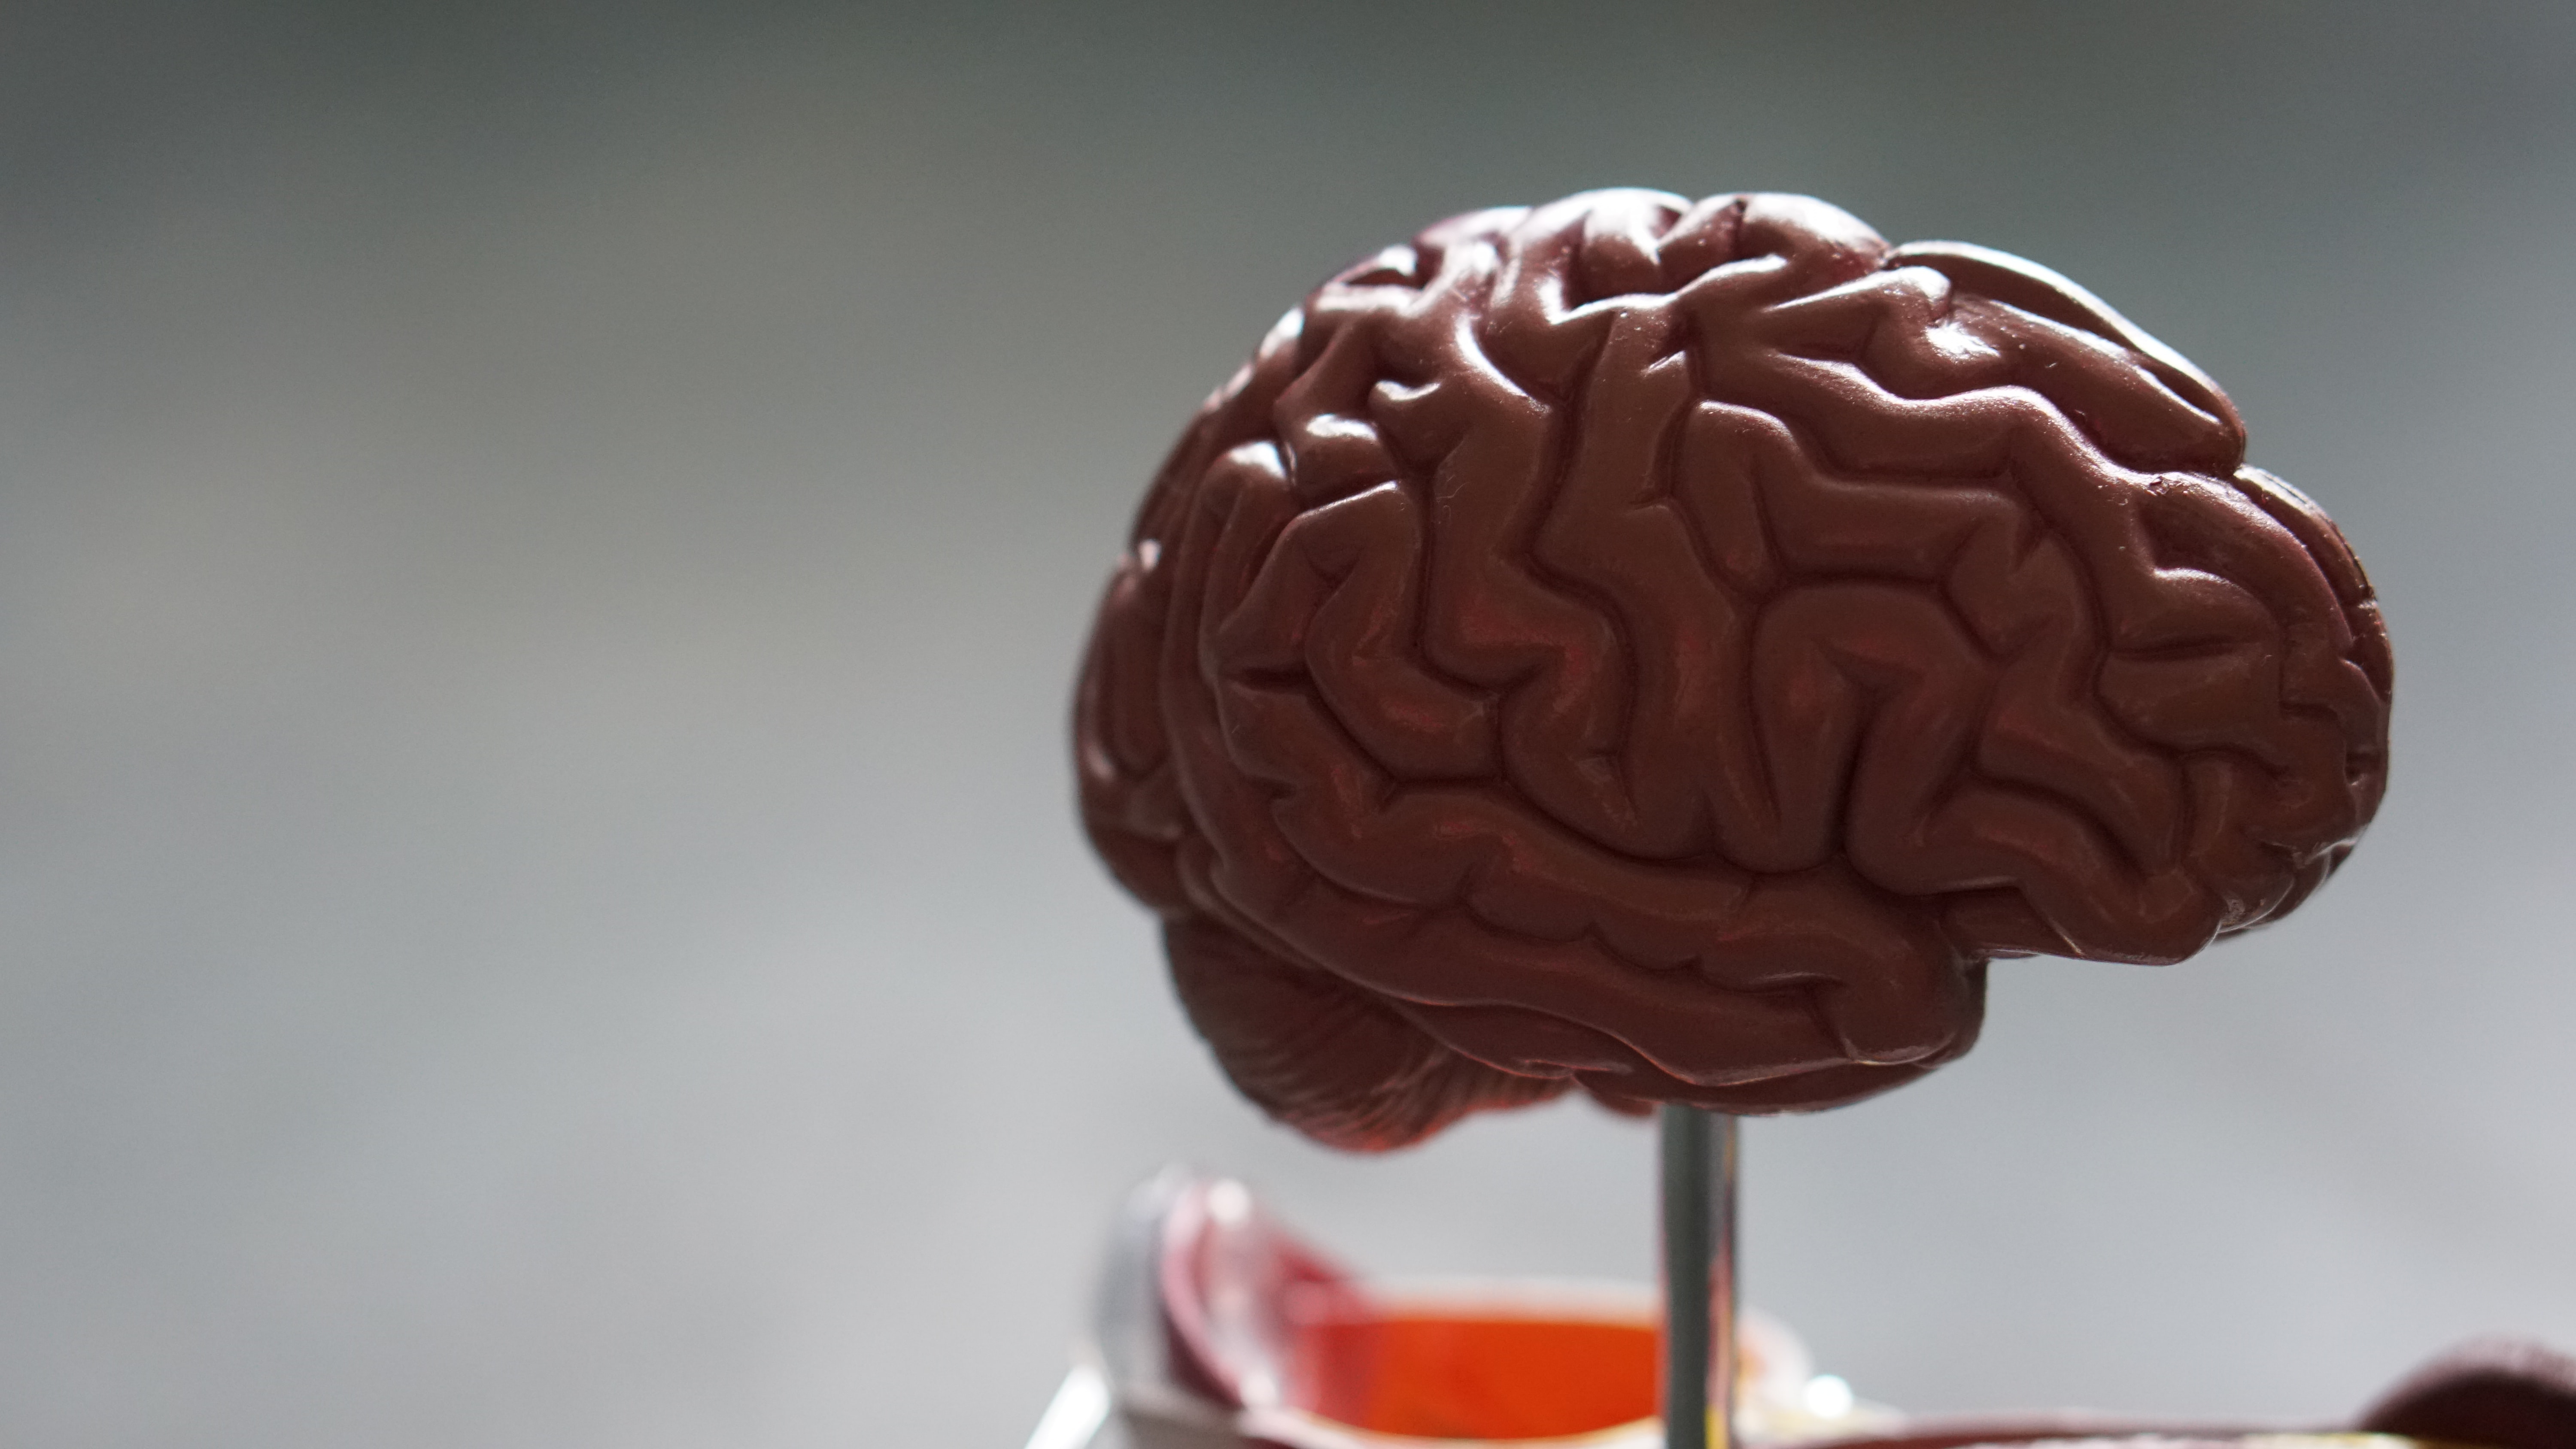 Figuring Out How the Brain Works